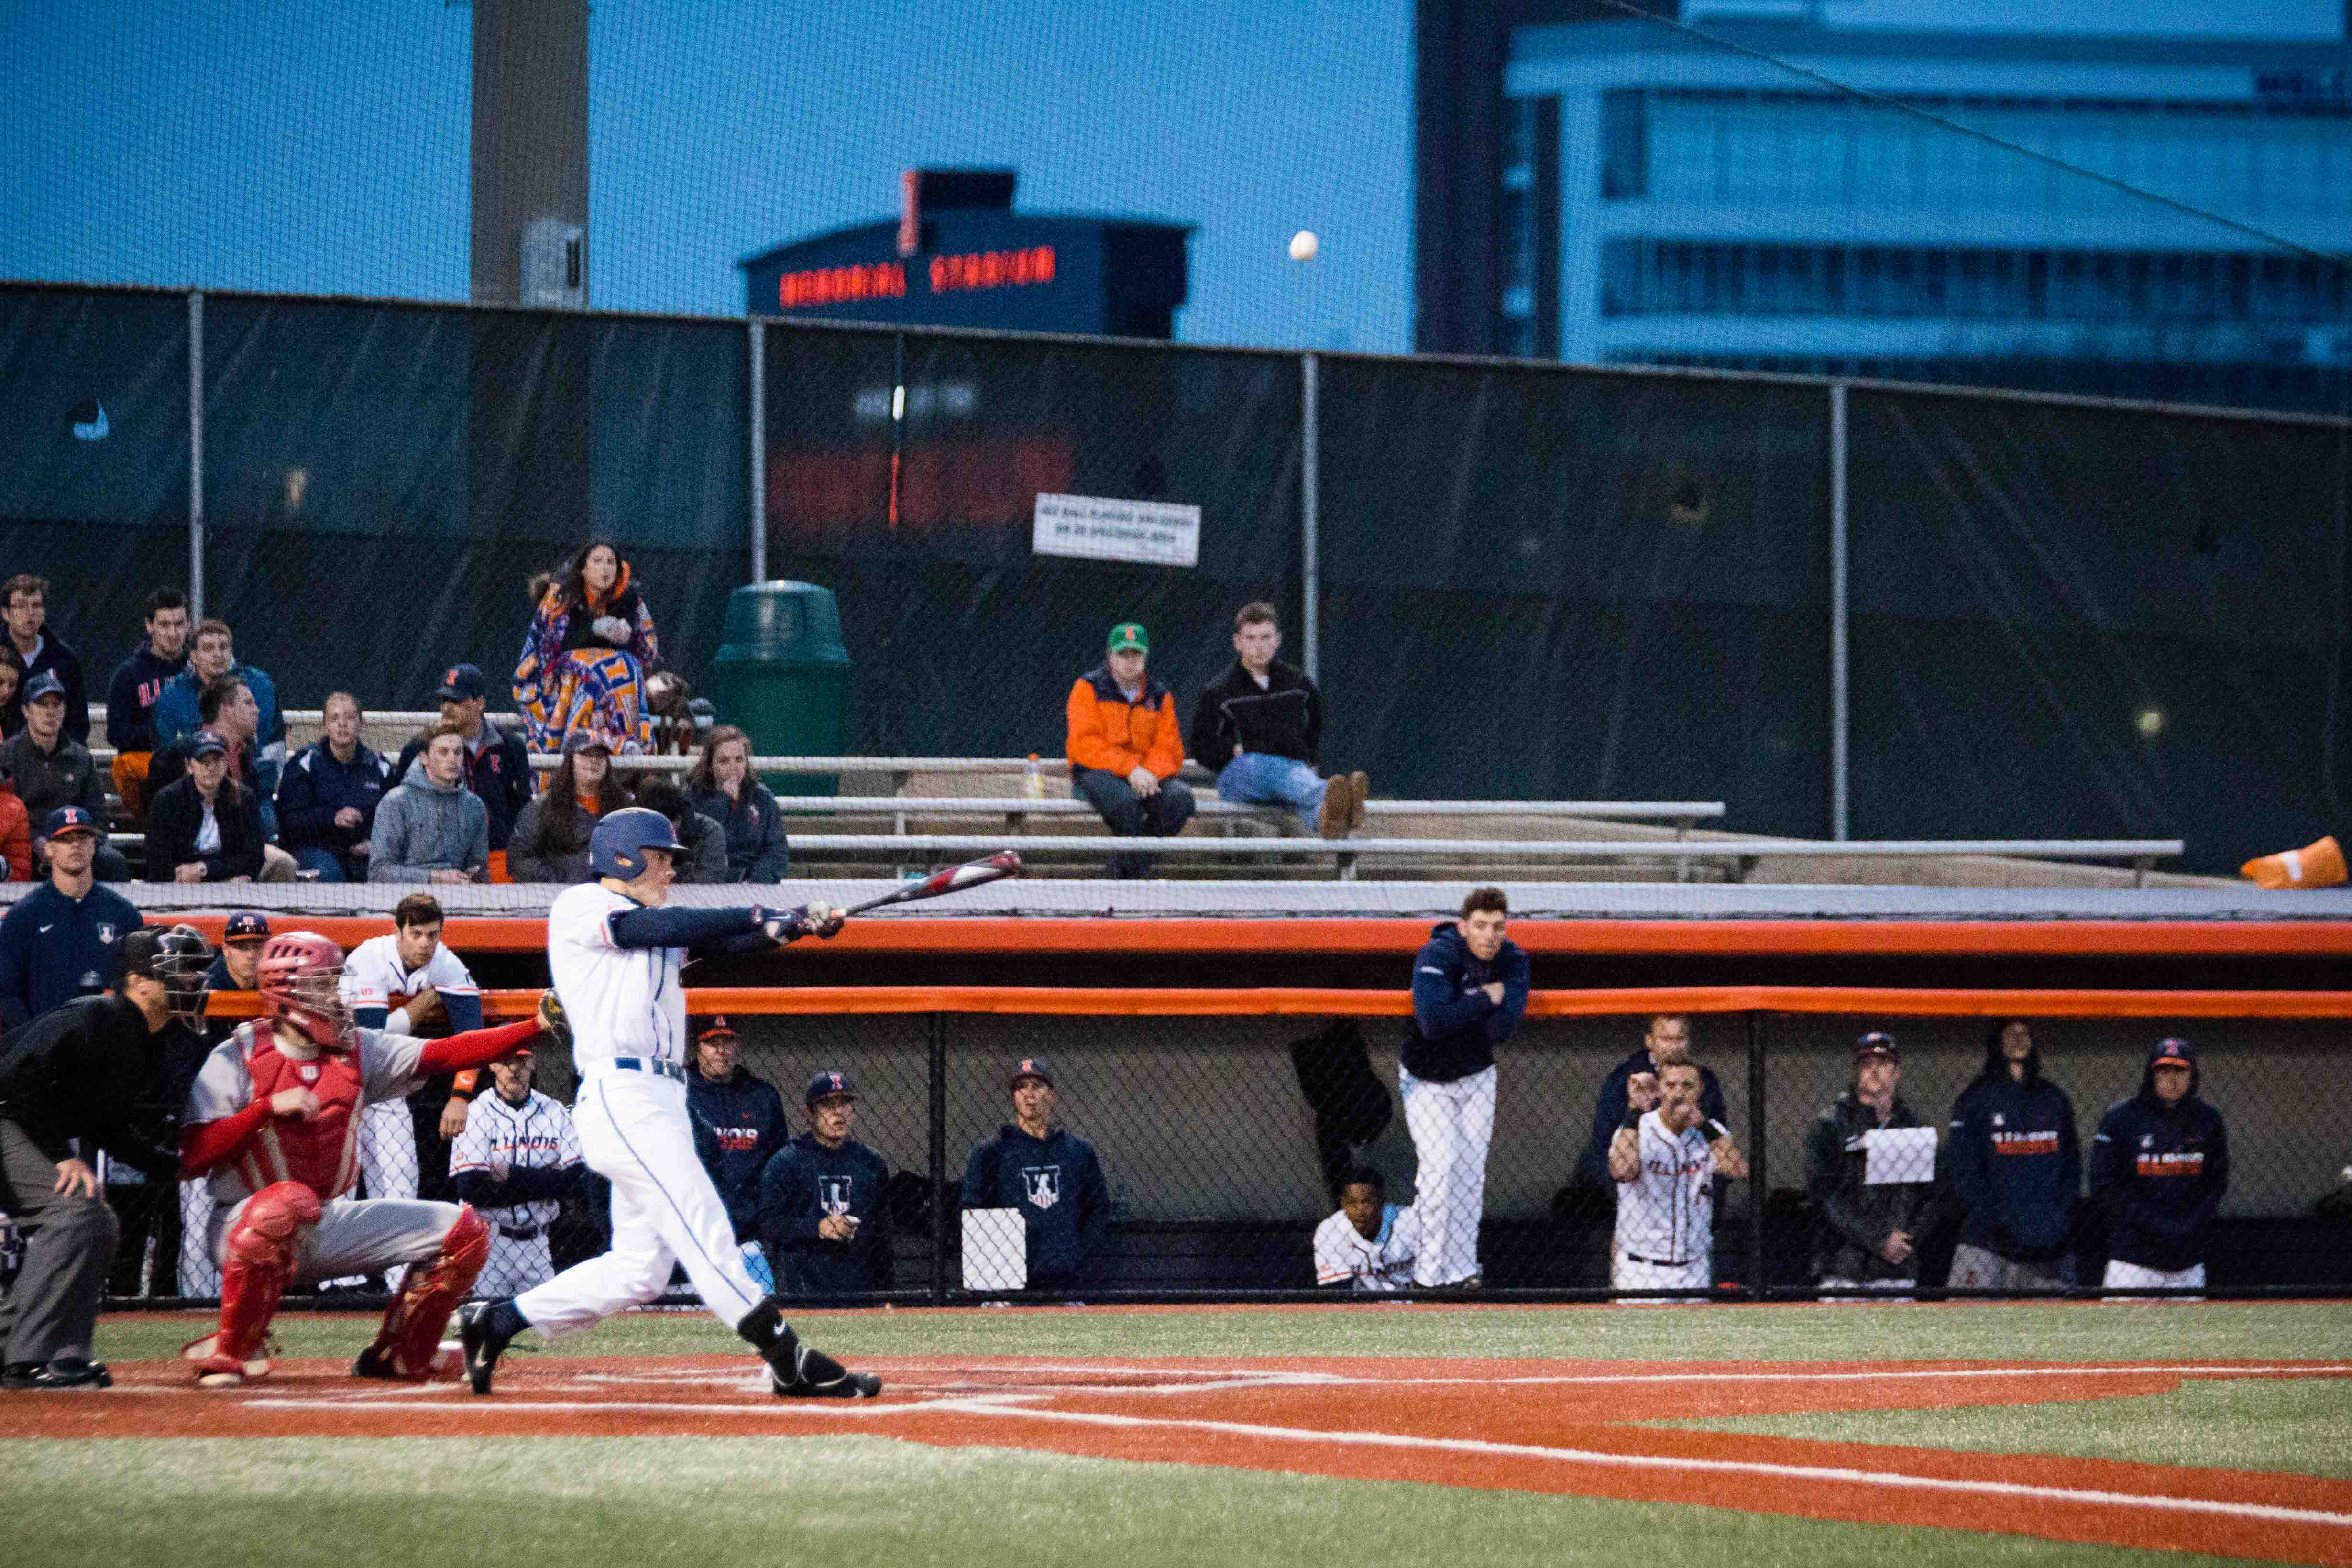 Illinois' Michael Massey hits a pop fly against Bradley at Illinois Field on Tuesday, March 28. The team recently beat Illinois State 6-5. It will play Northwestern in a three-game series this weekend.